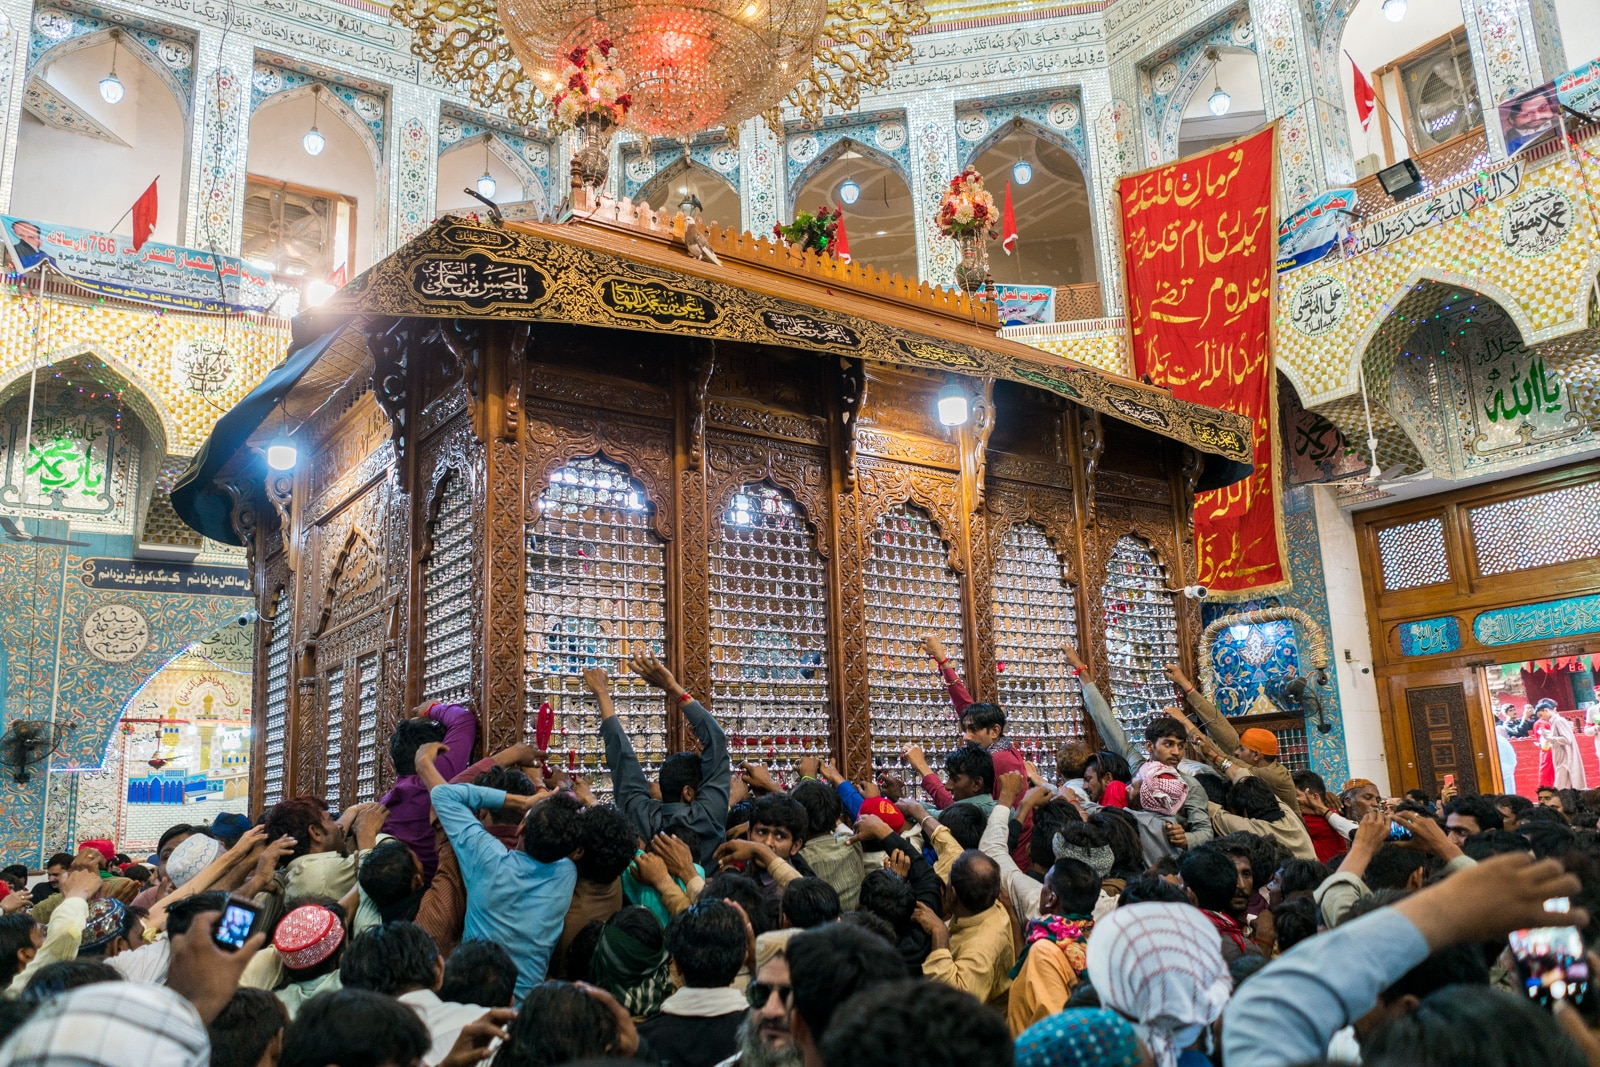 The Urs of Lal Shahbaz Qalandar in Sehwan, Pakistan - Devotees trying to touch the shrine - Lost With Purpose travel blog